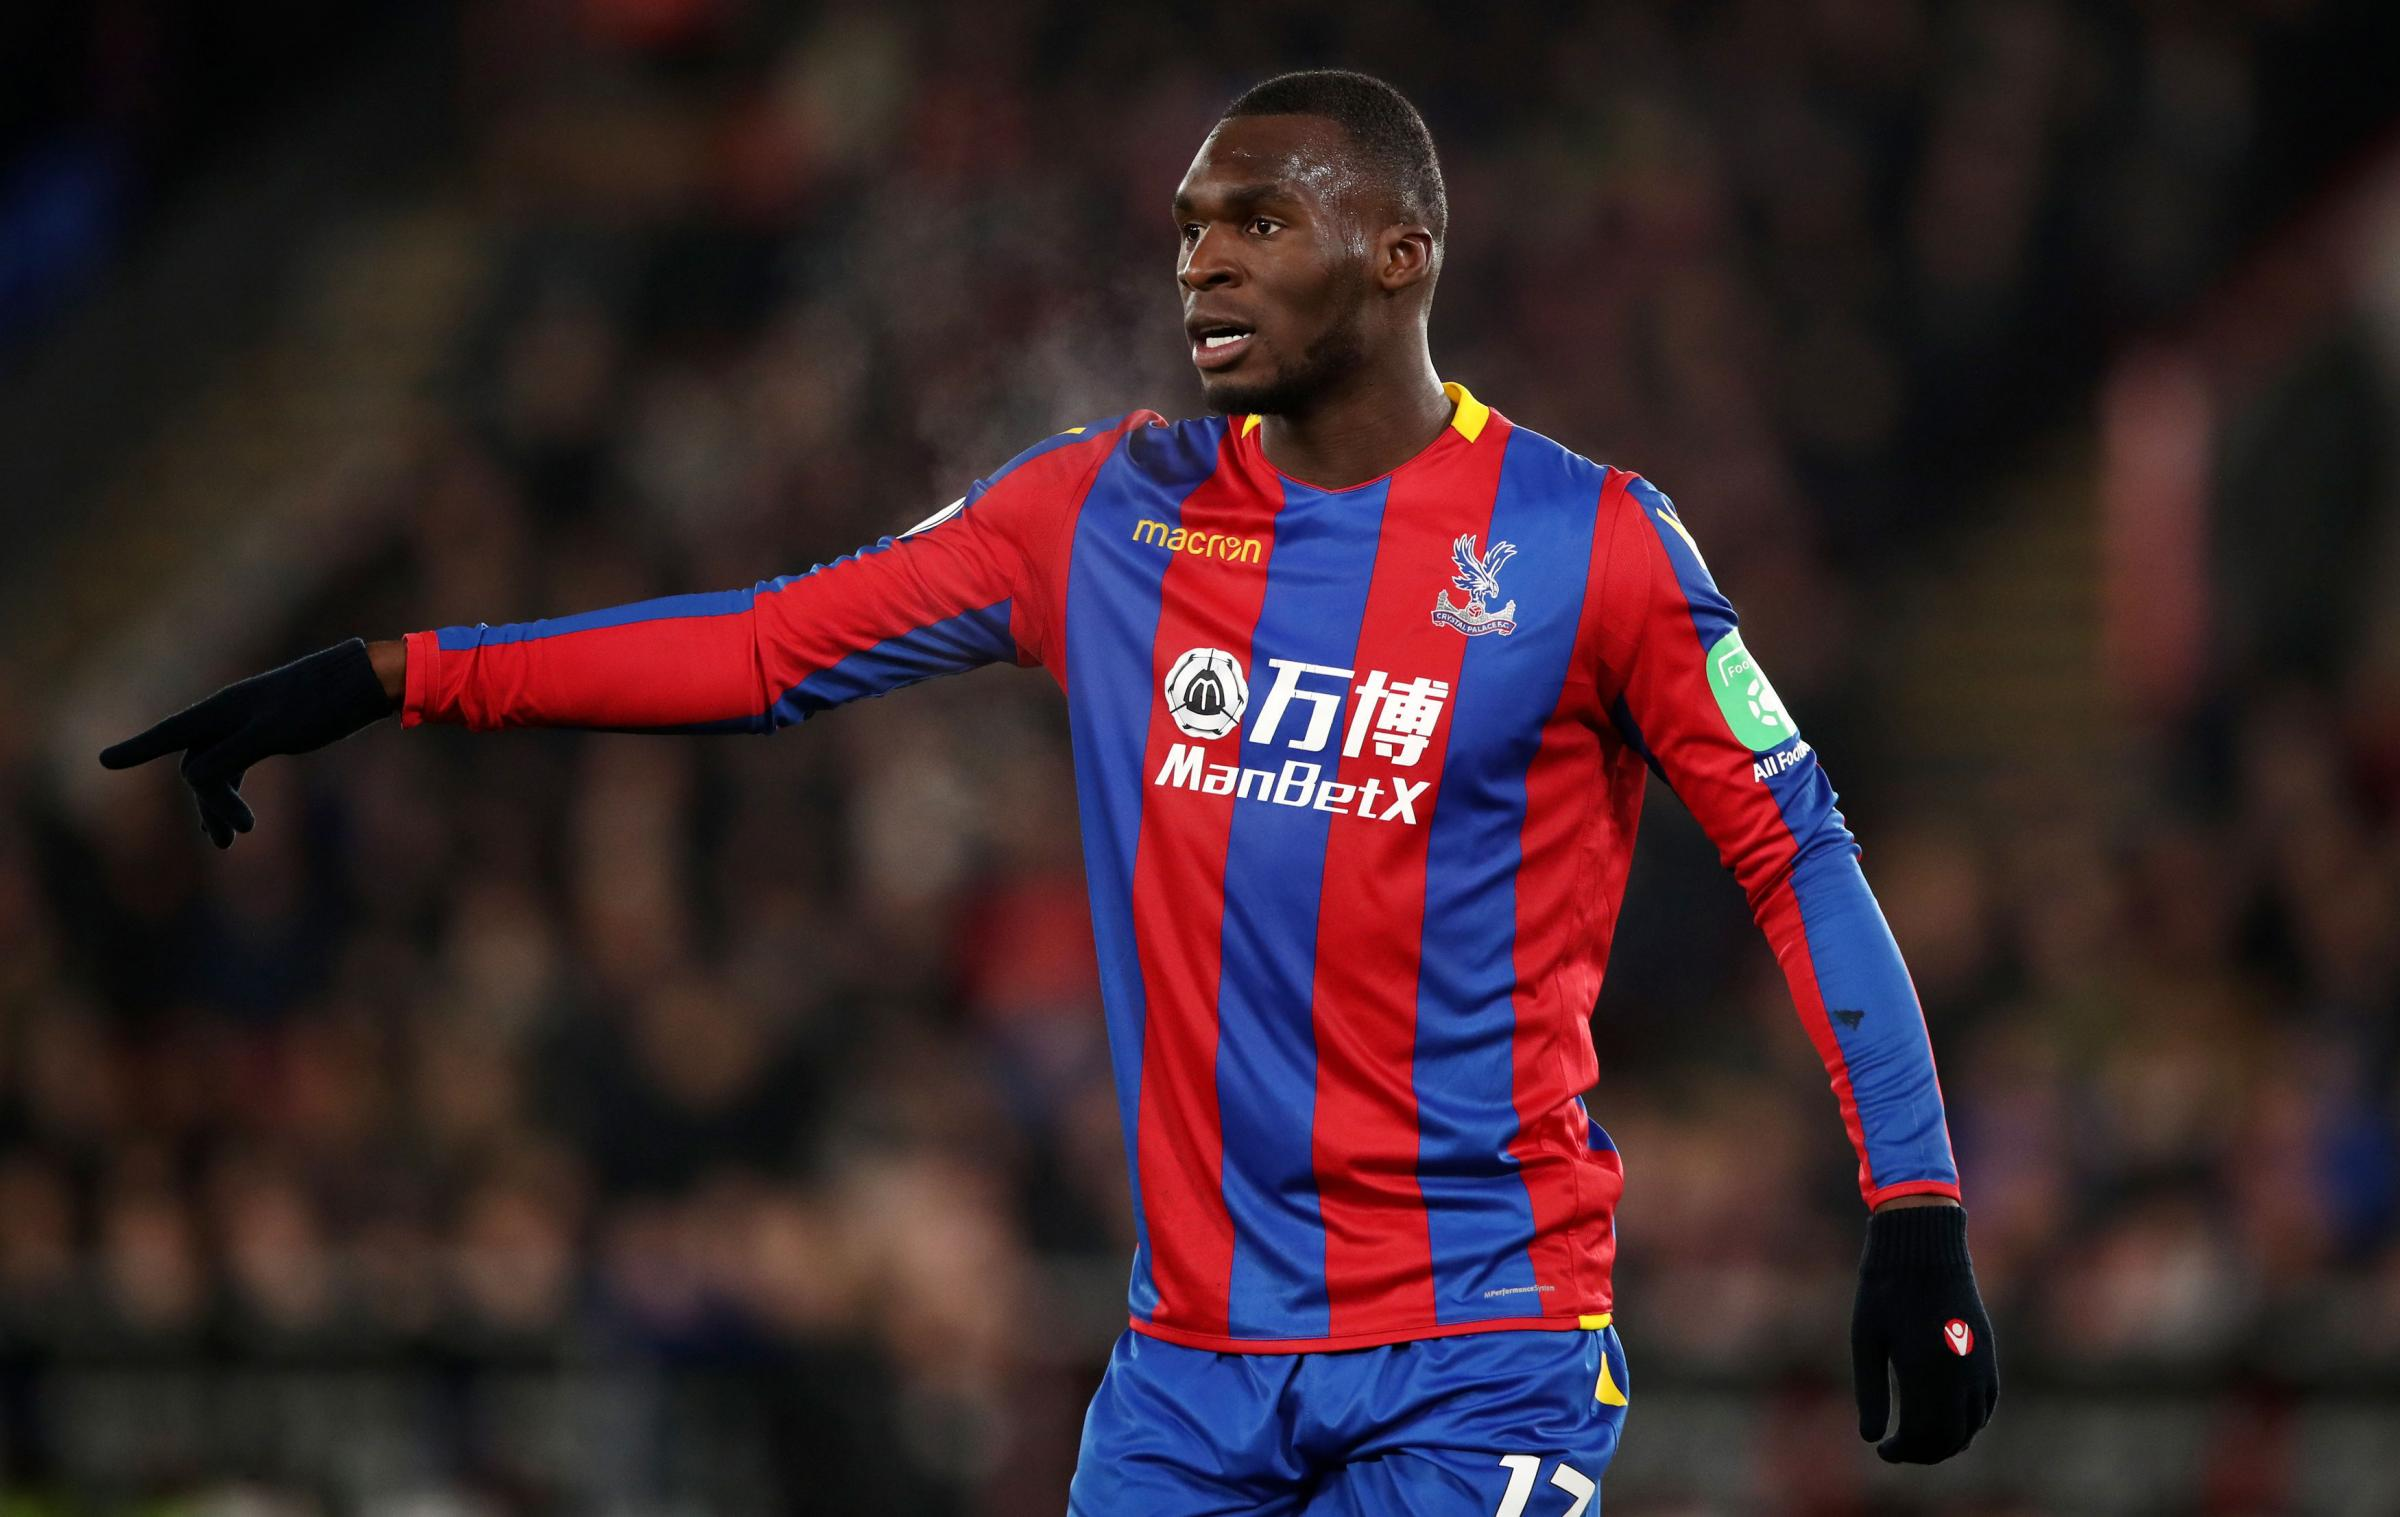 Crystal Palace's Christian Benteke. Photo: John Walton/PA Wire